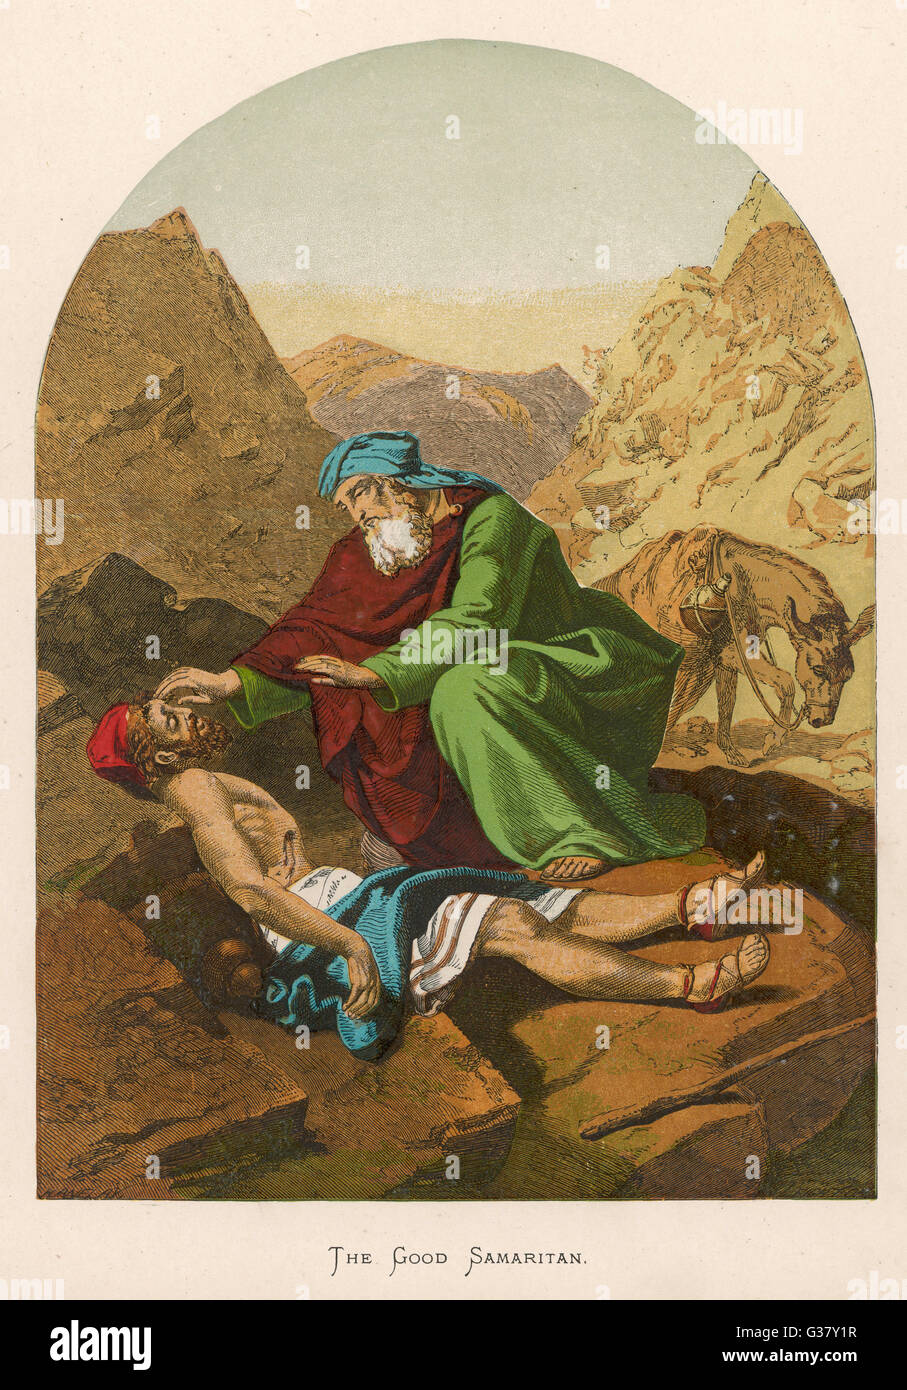 The parable of the Good Samaritan who, unlike others, didn't pass by on the other side. - Stock Image